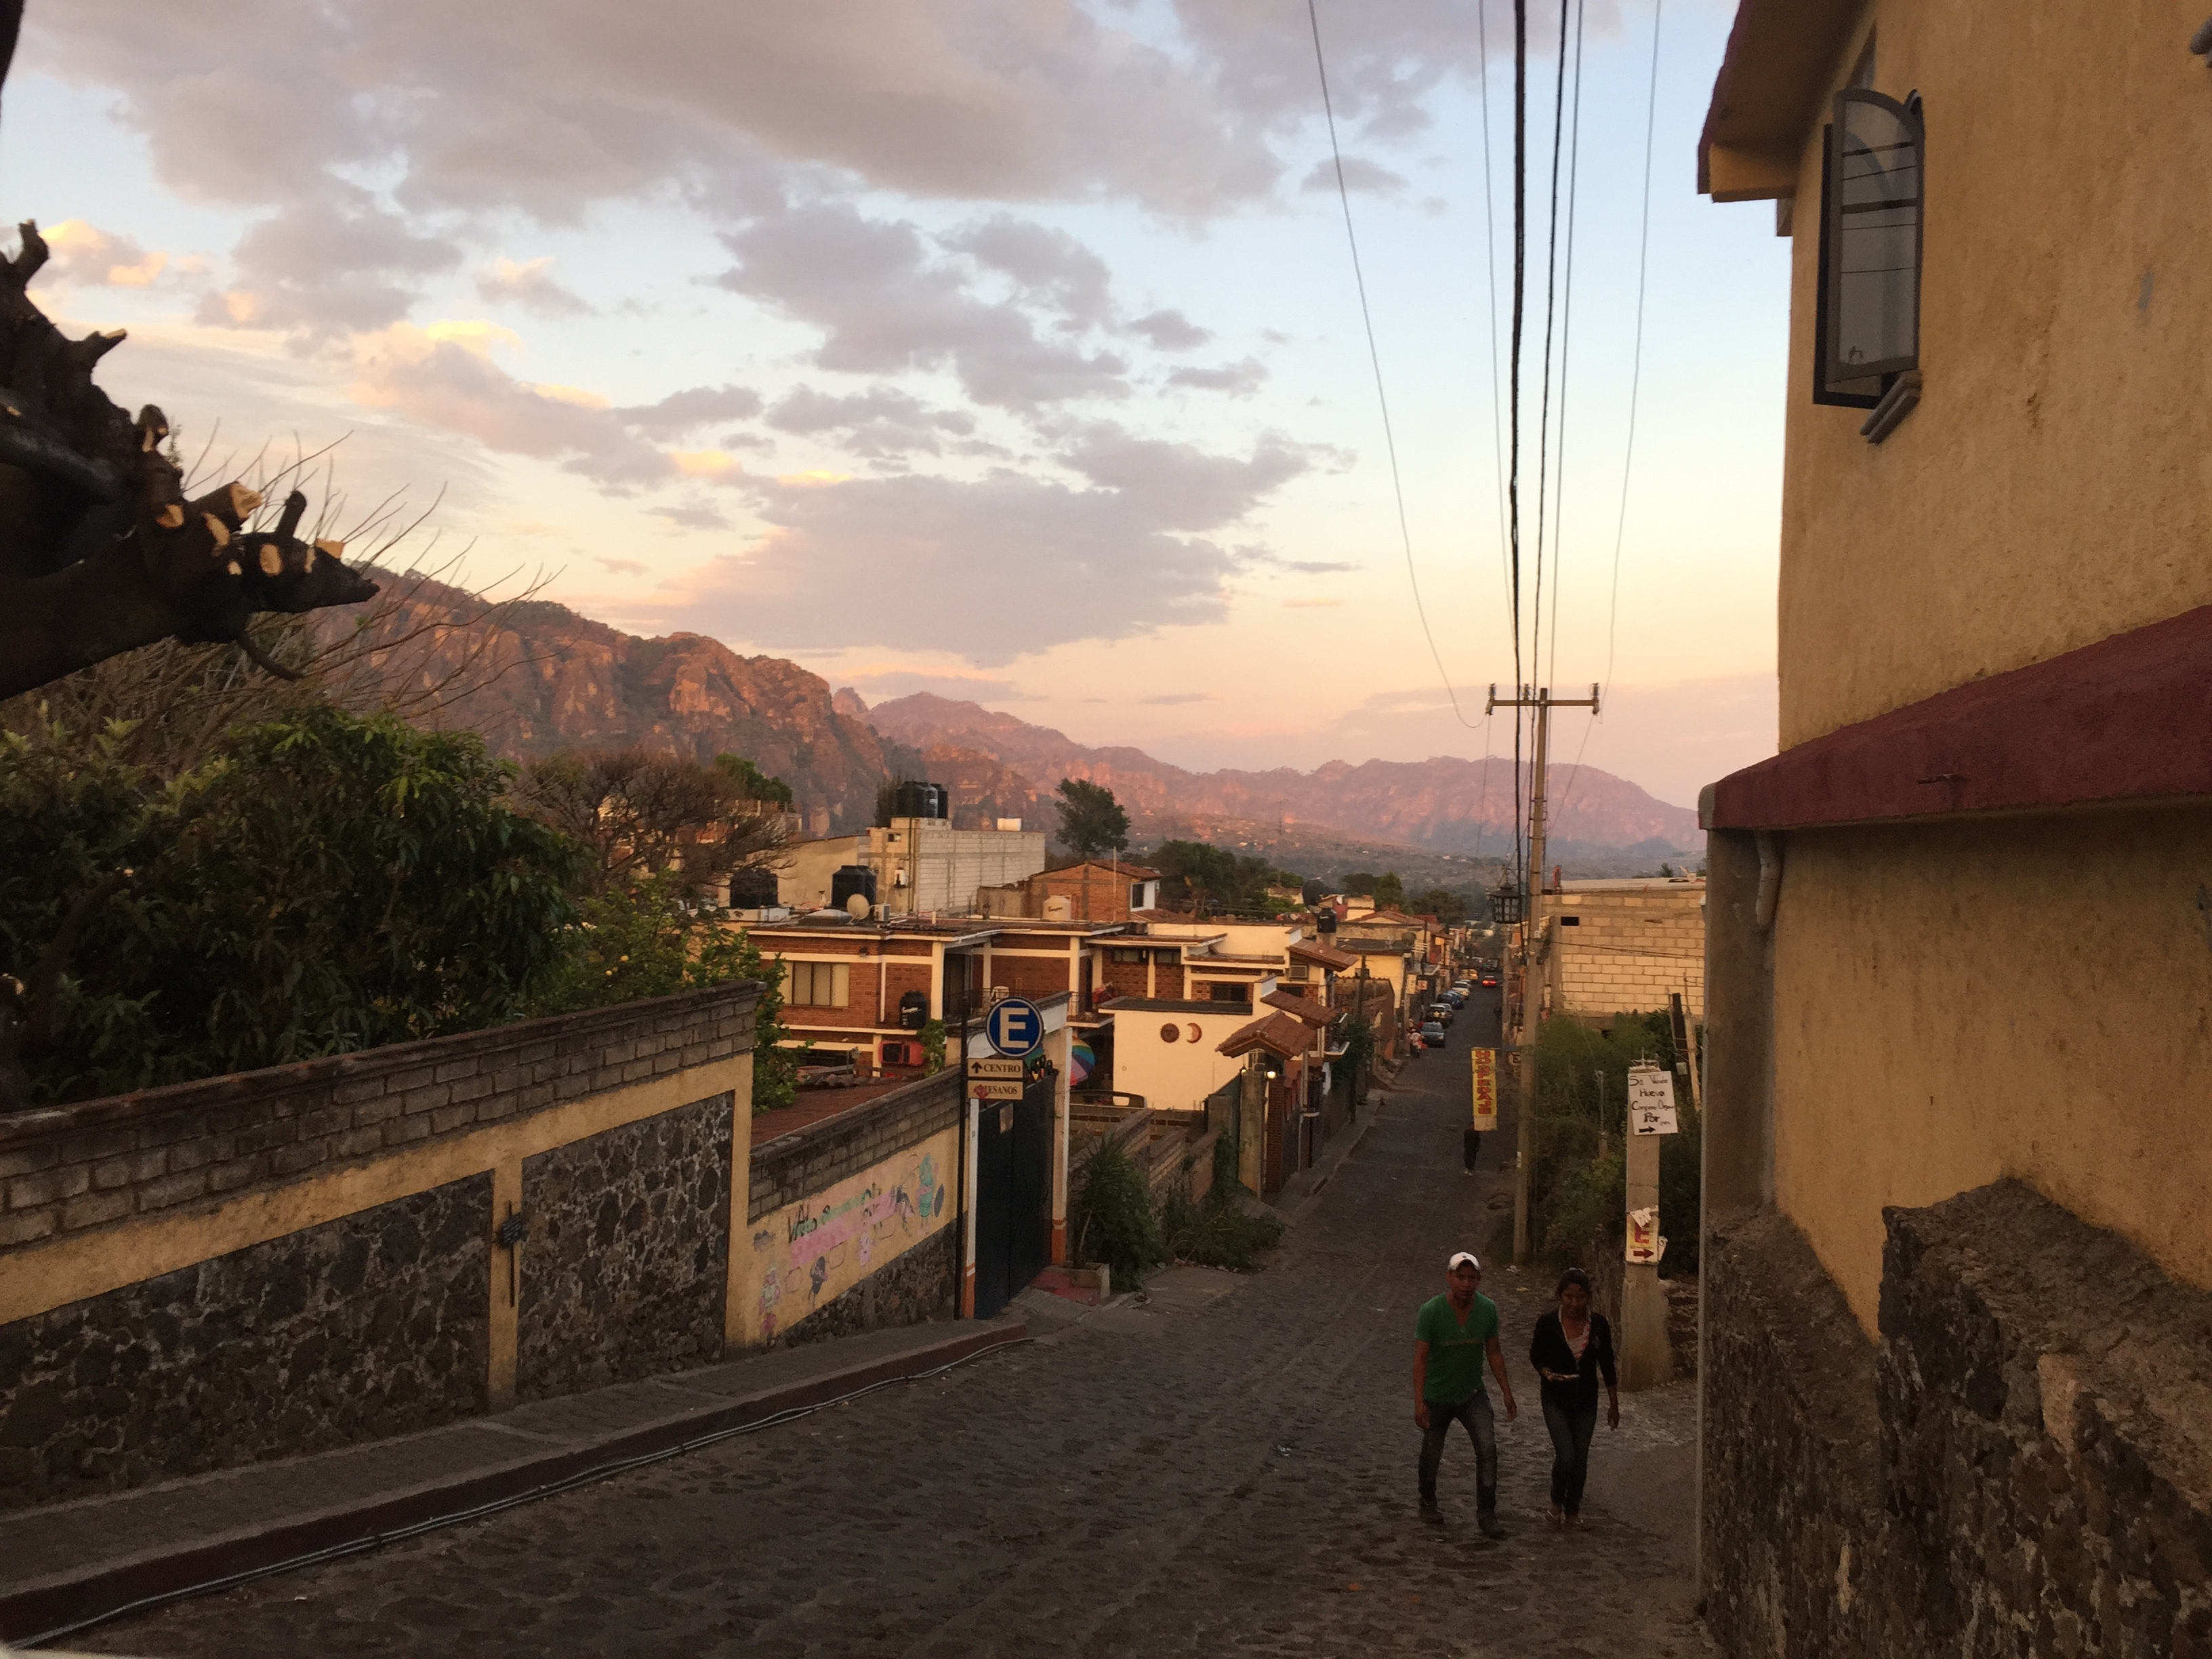 Sunset in Tepoztlan.